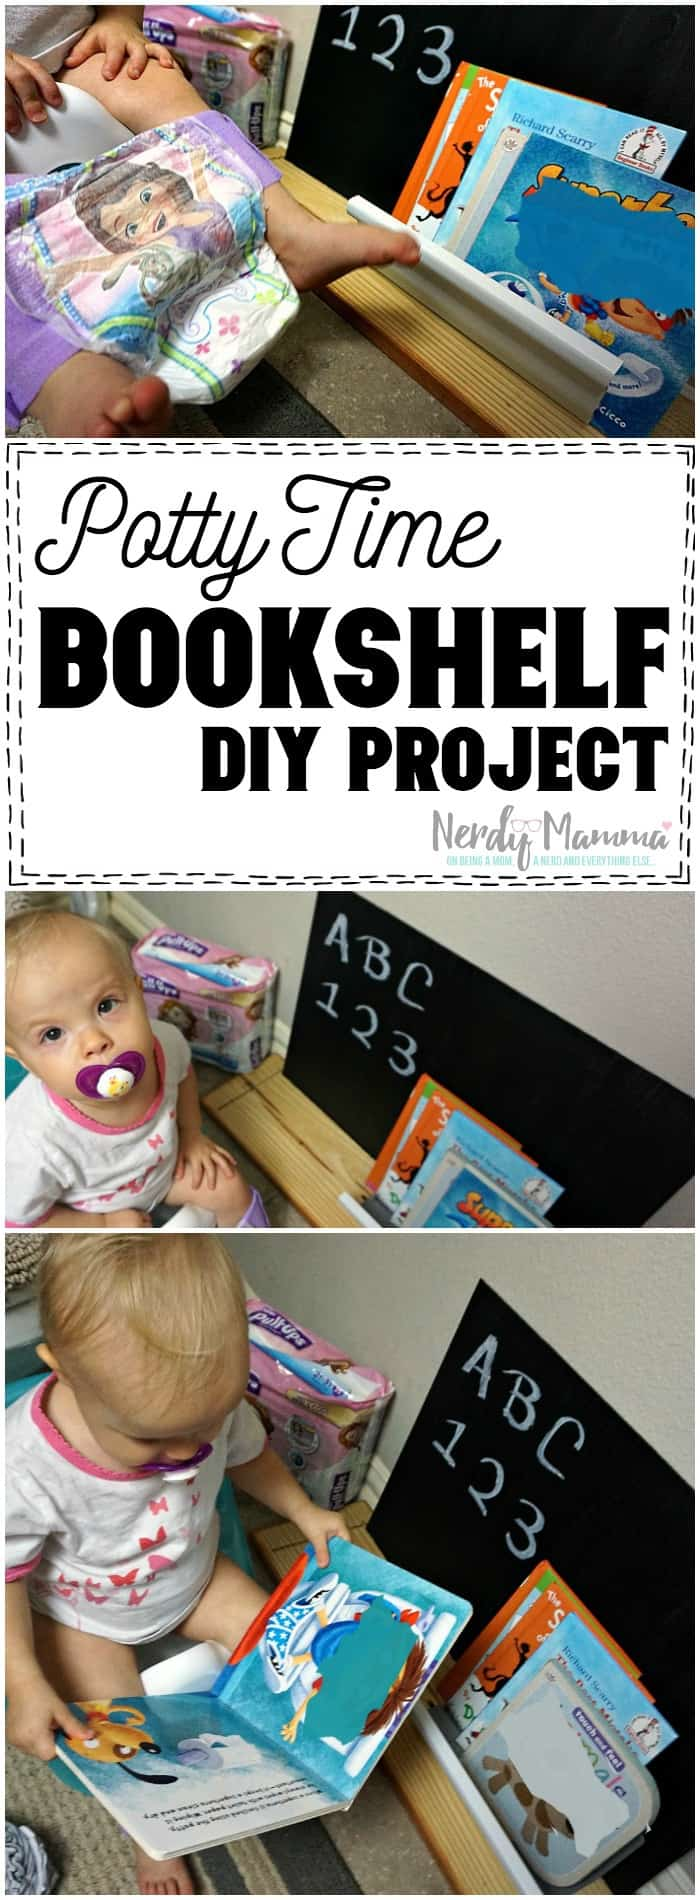 I totally want to make this easy DIY bookshelf for toddlers for the bathroom! What a cute idea! And how simple. I love it!